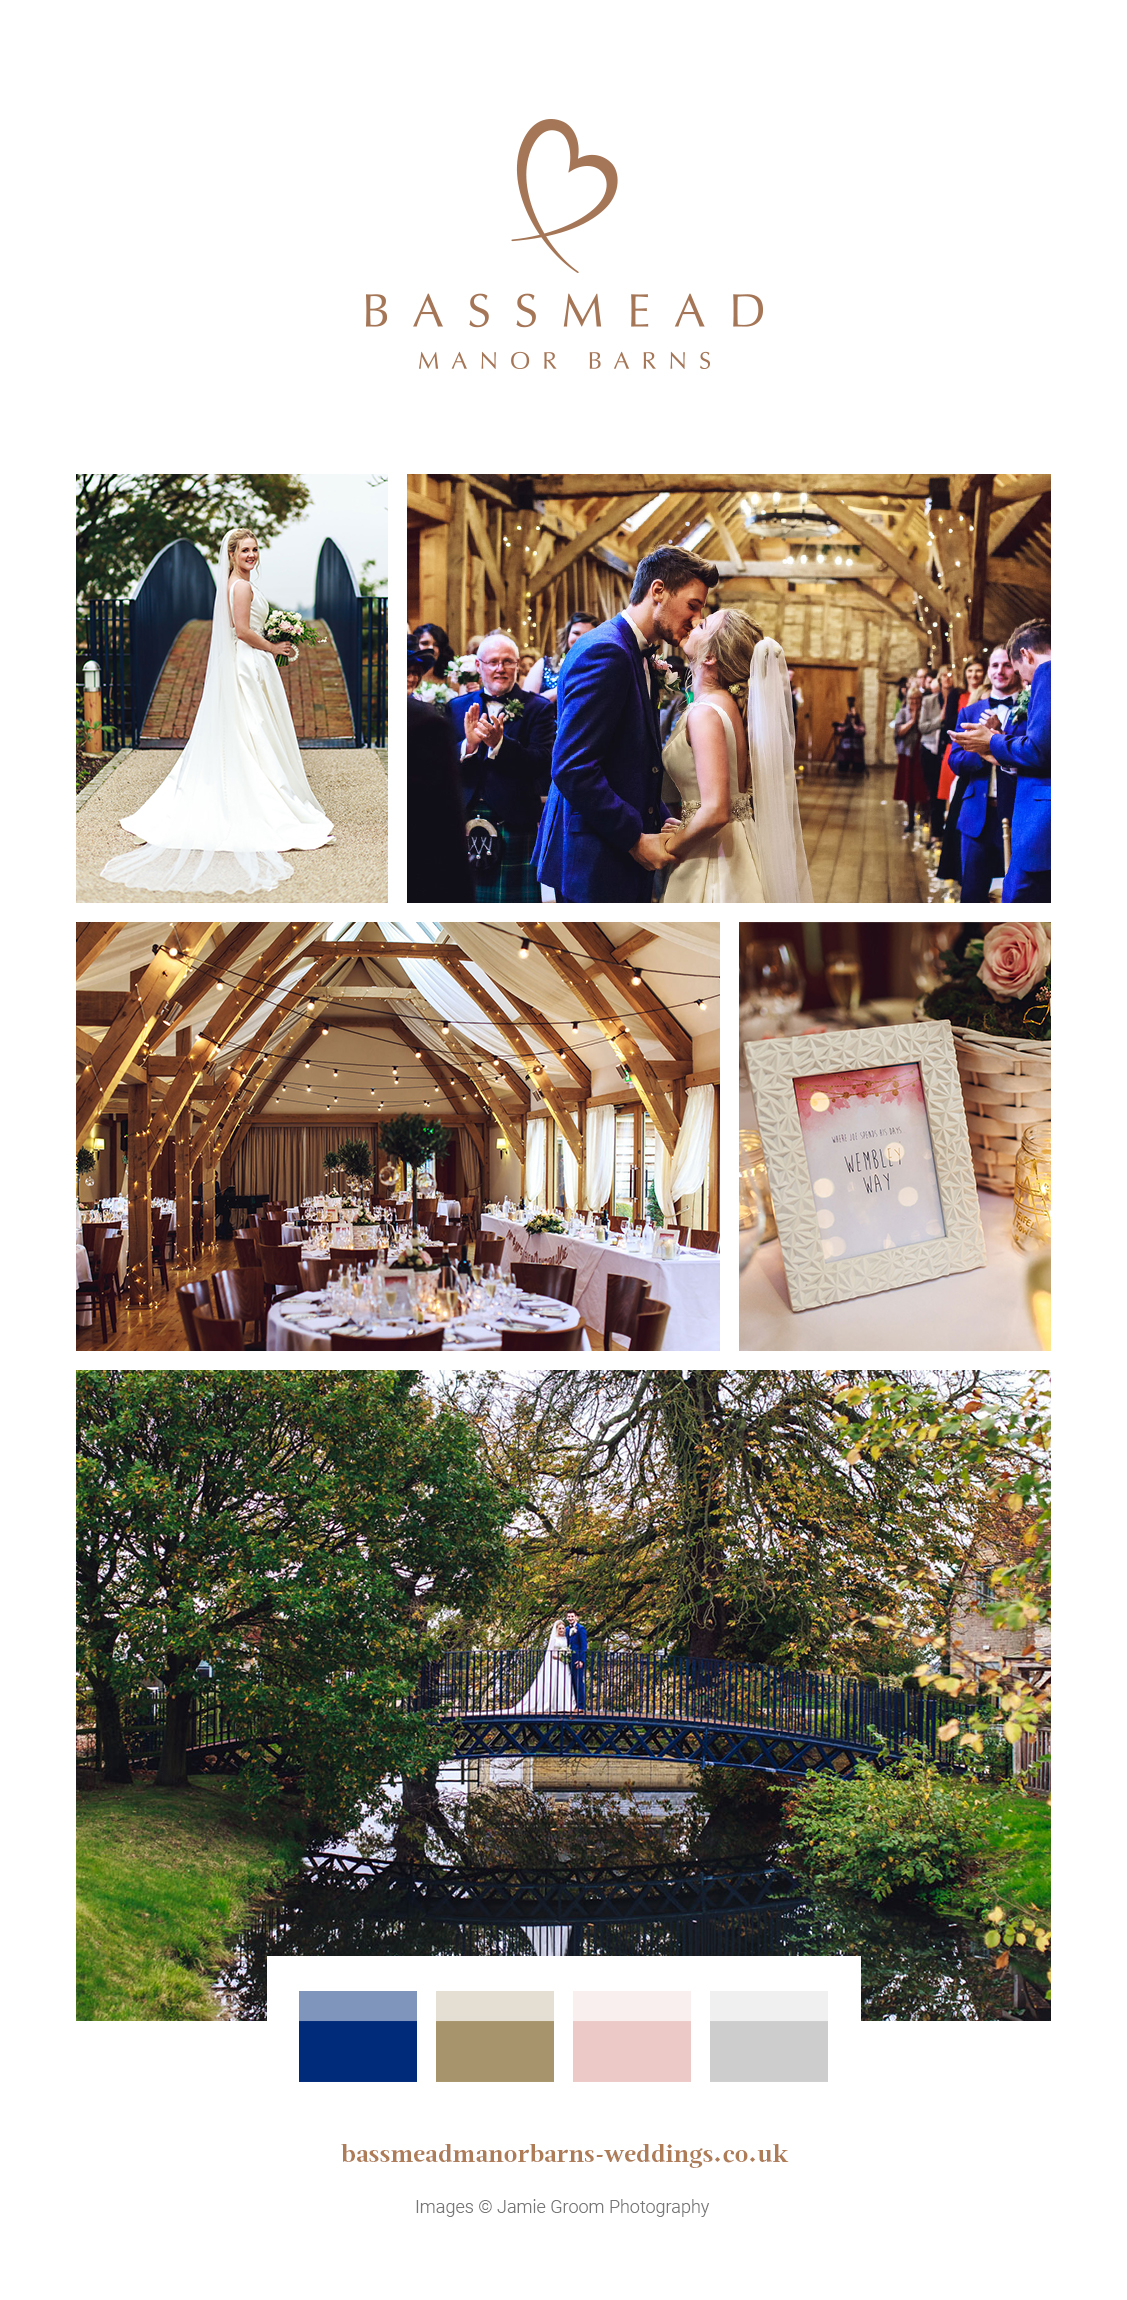 Save the style for Amy and Joe's wedding day at Bassmead Manor Barns